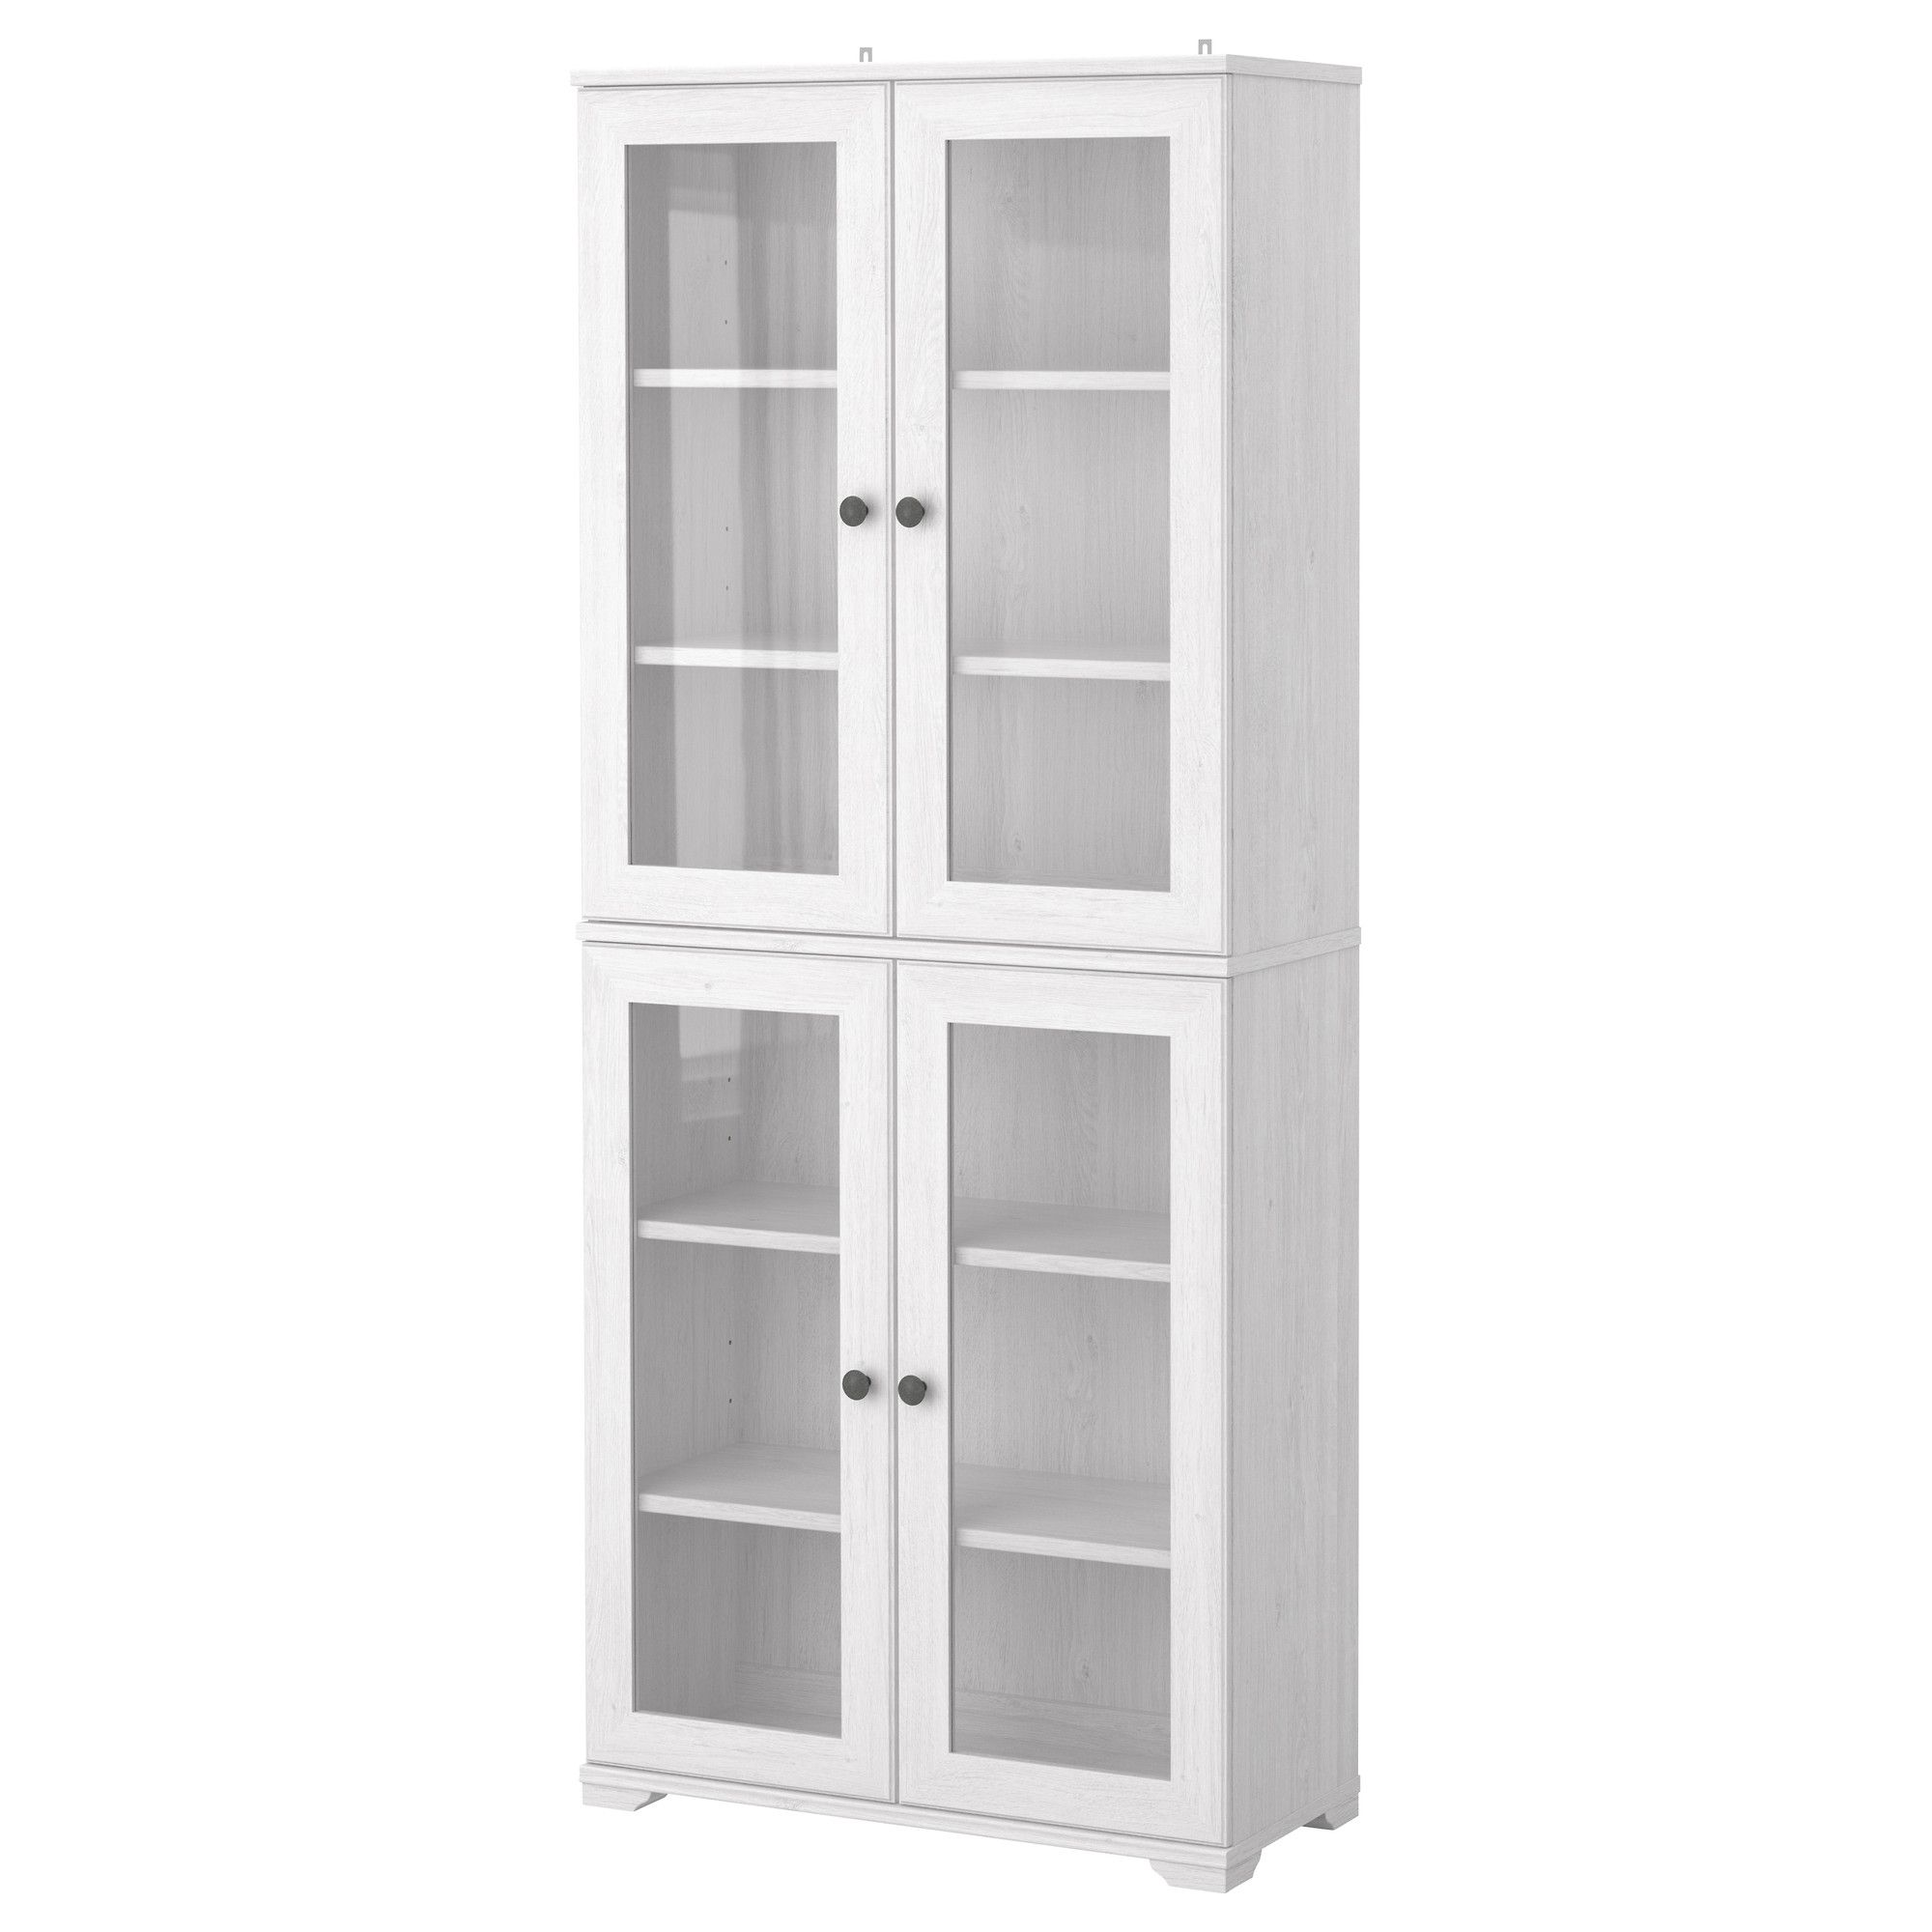 BORGSJ  Glass door cabinet white IKEA Part of living room TV wall storage 135 as pictured need